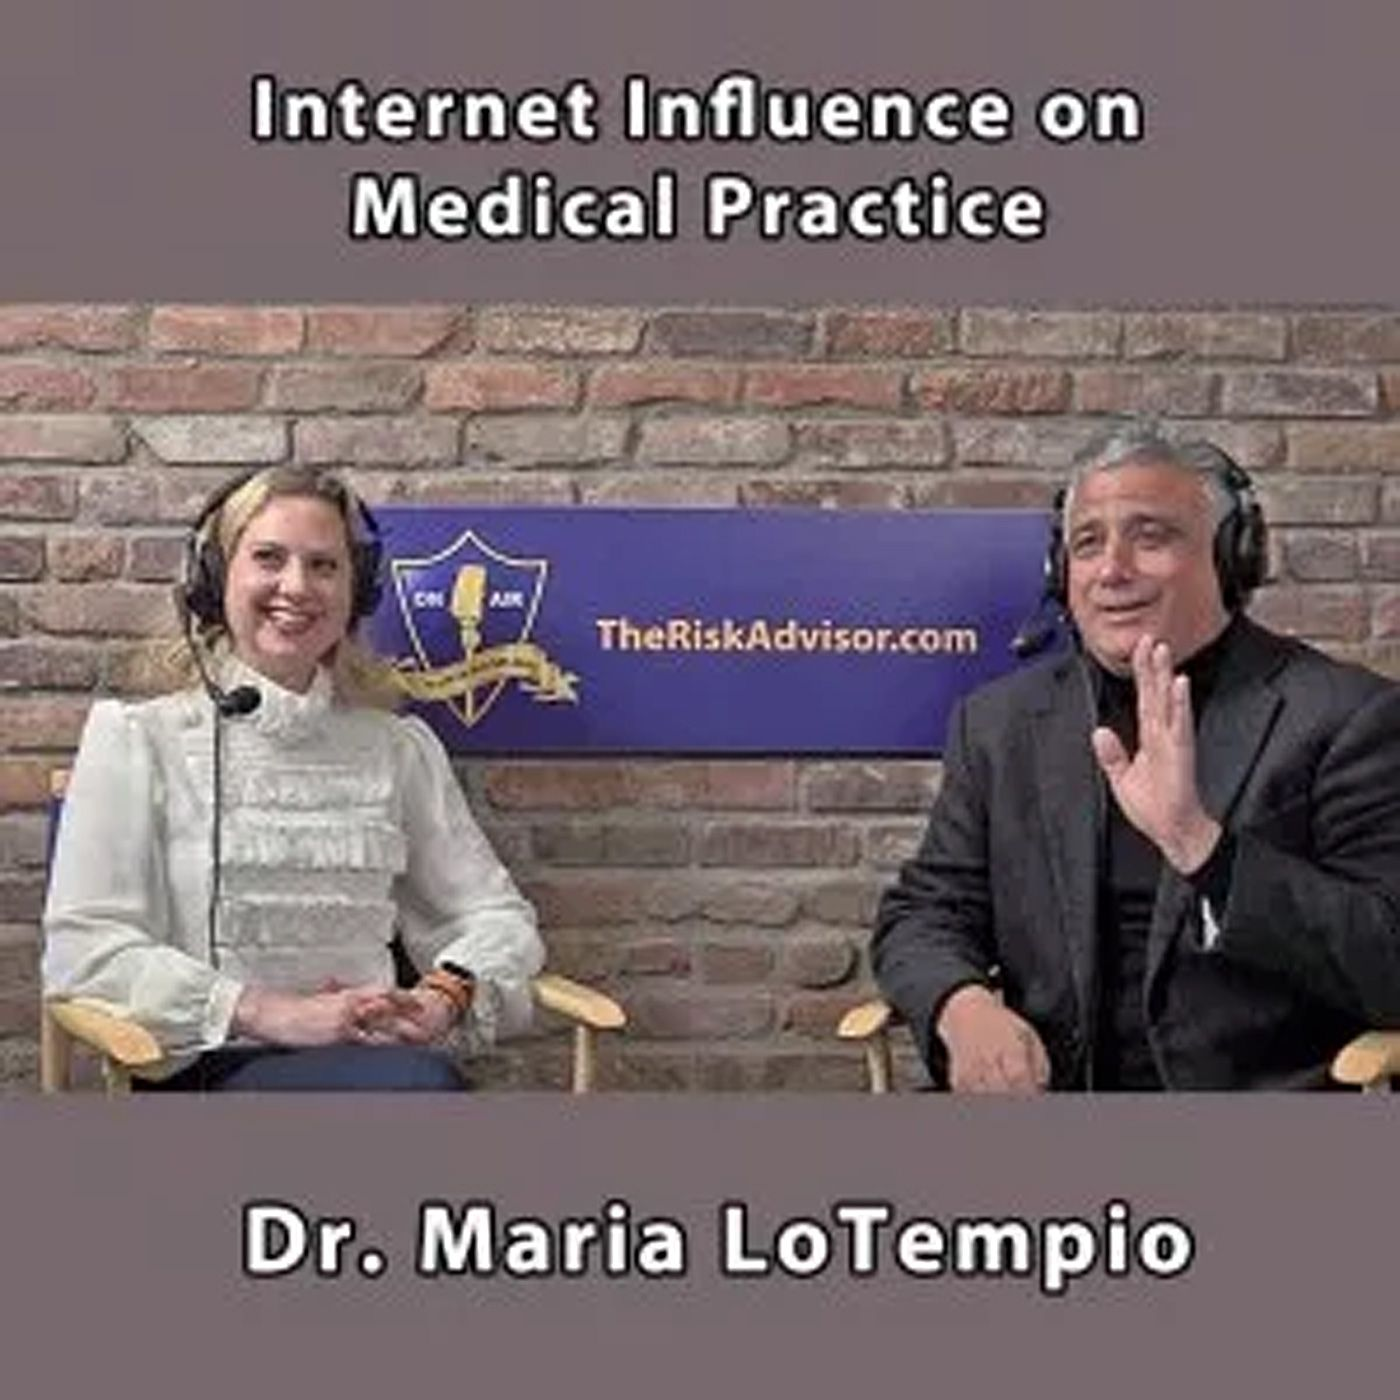 Dr. Maria LoTempio- The Web and Medicine edited